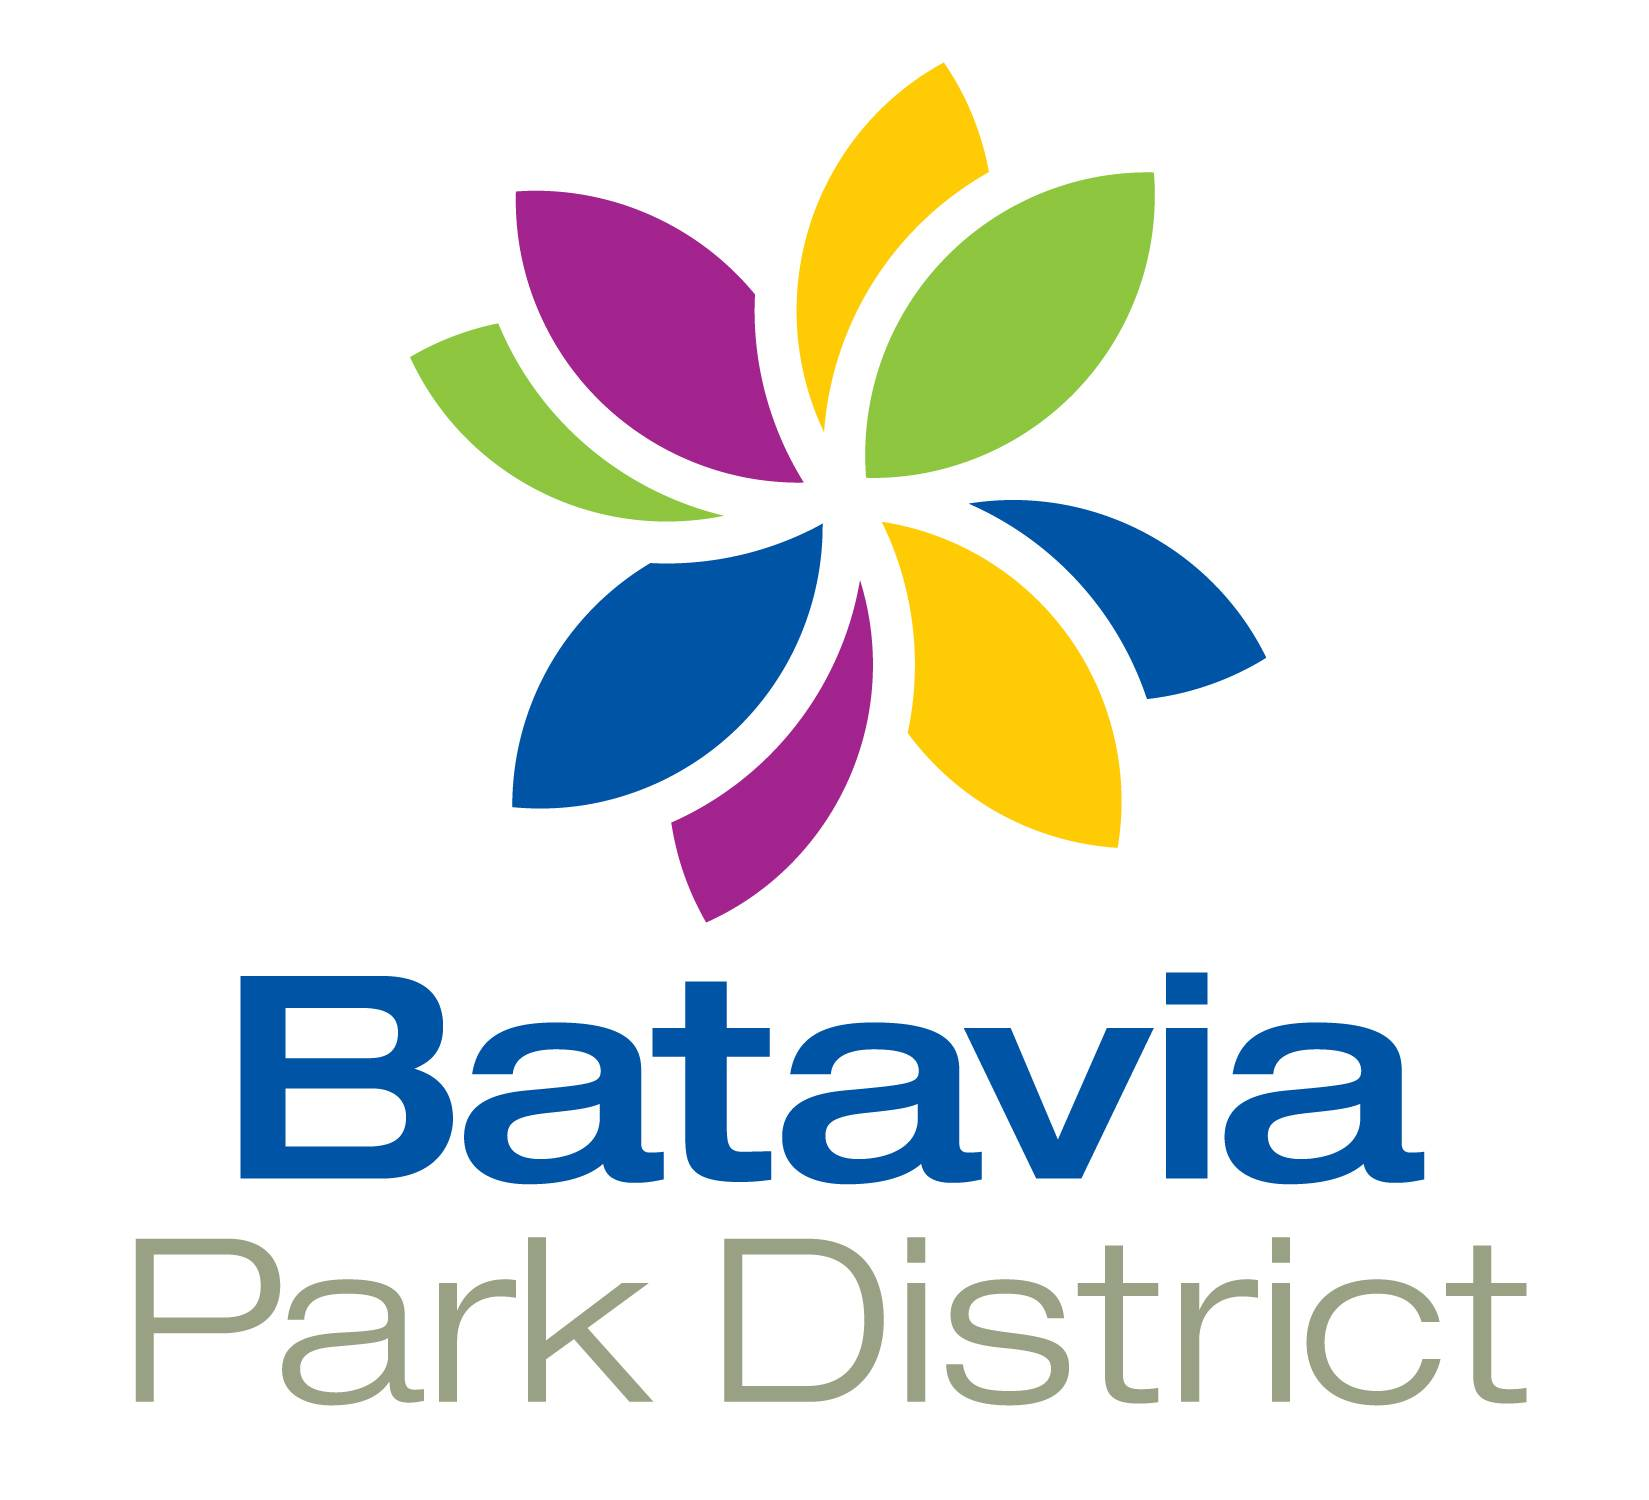 The new Batavia Park District logo reflects the district's mission to be fun and innovative.